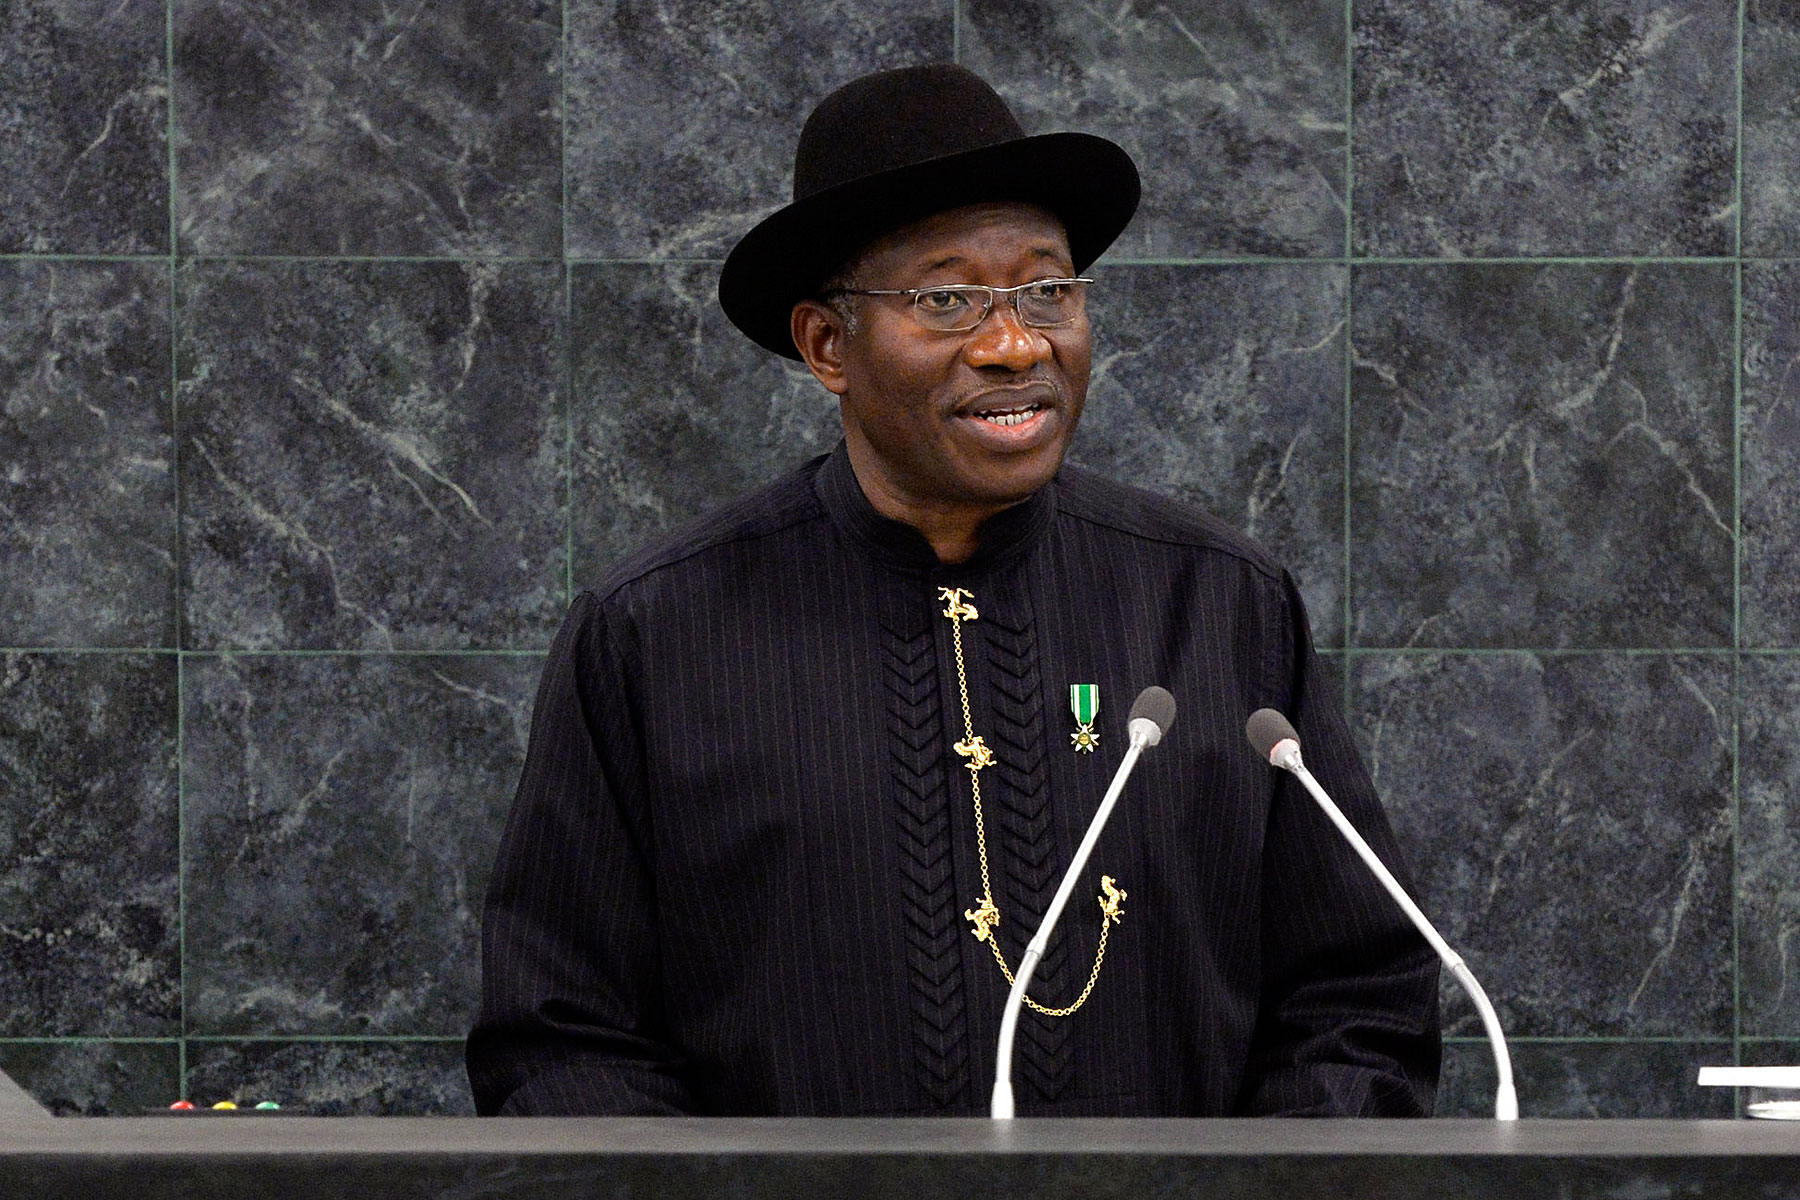 Nigerian President Goodluck Jonathan speaks at the 68th United Nations General Assembly on Sept. 24, 2013 in New York City